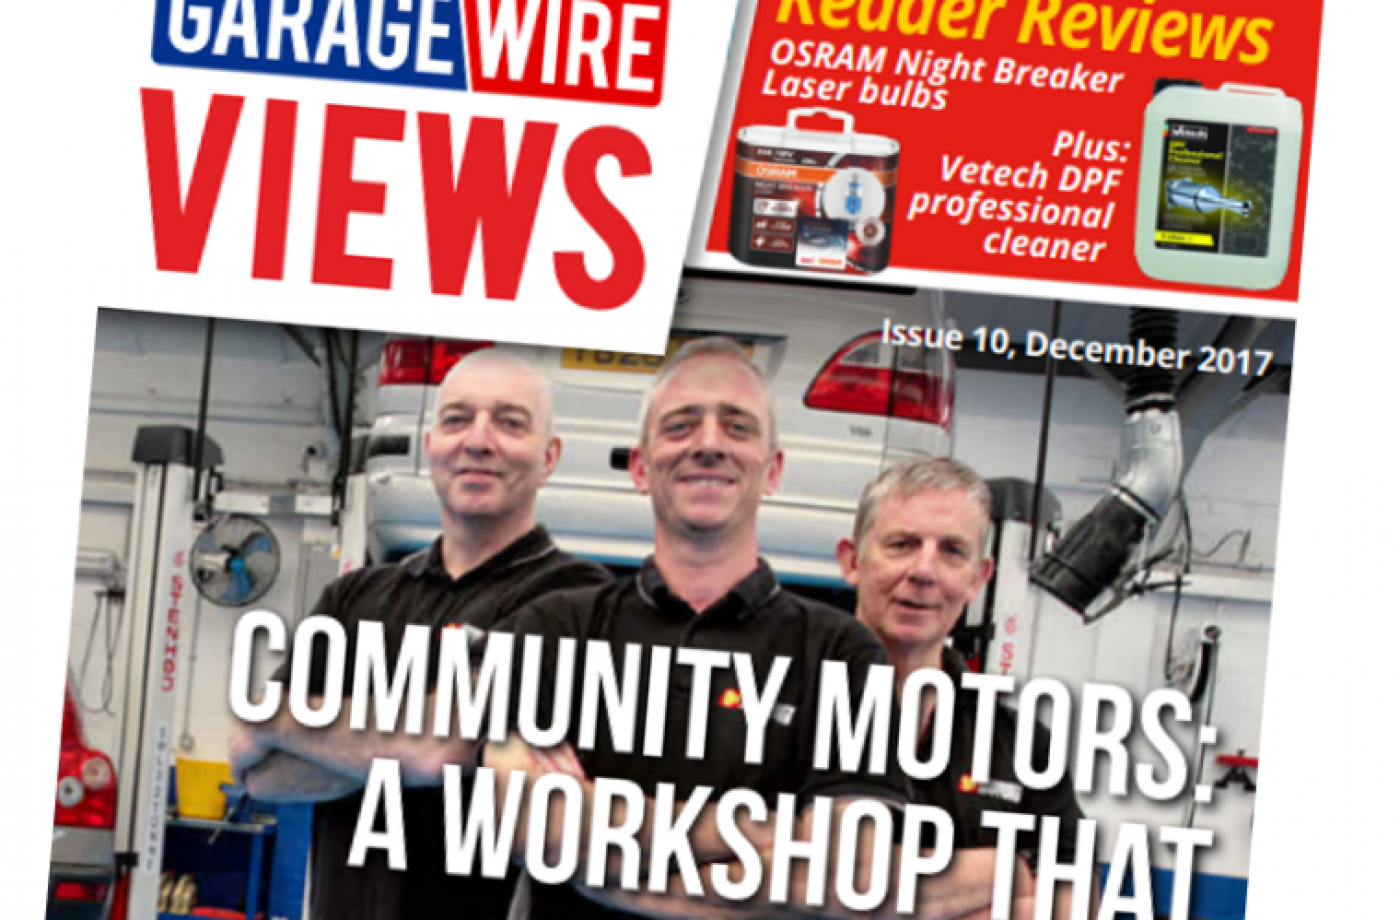 GW Views winter issue out now with latest industry news comments and reactions